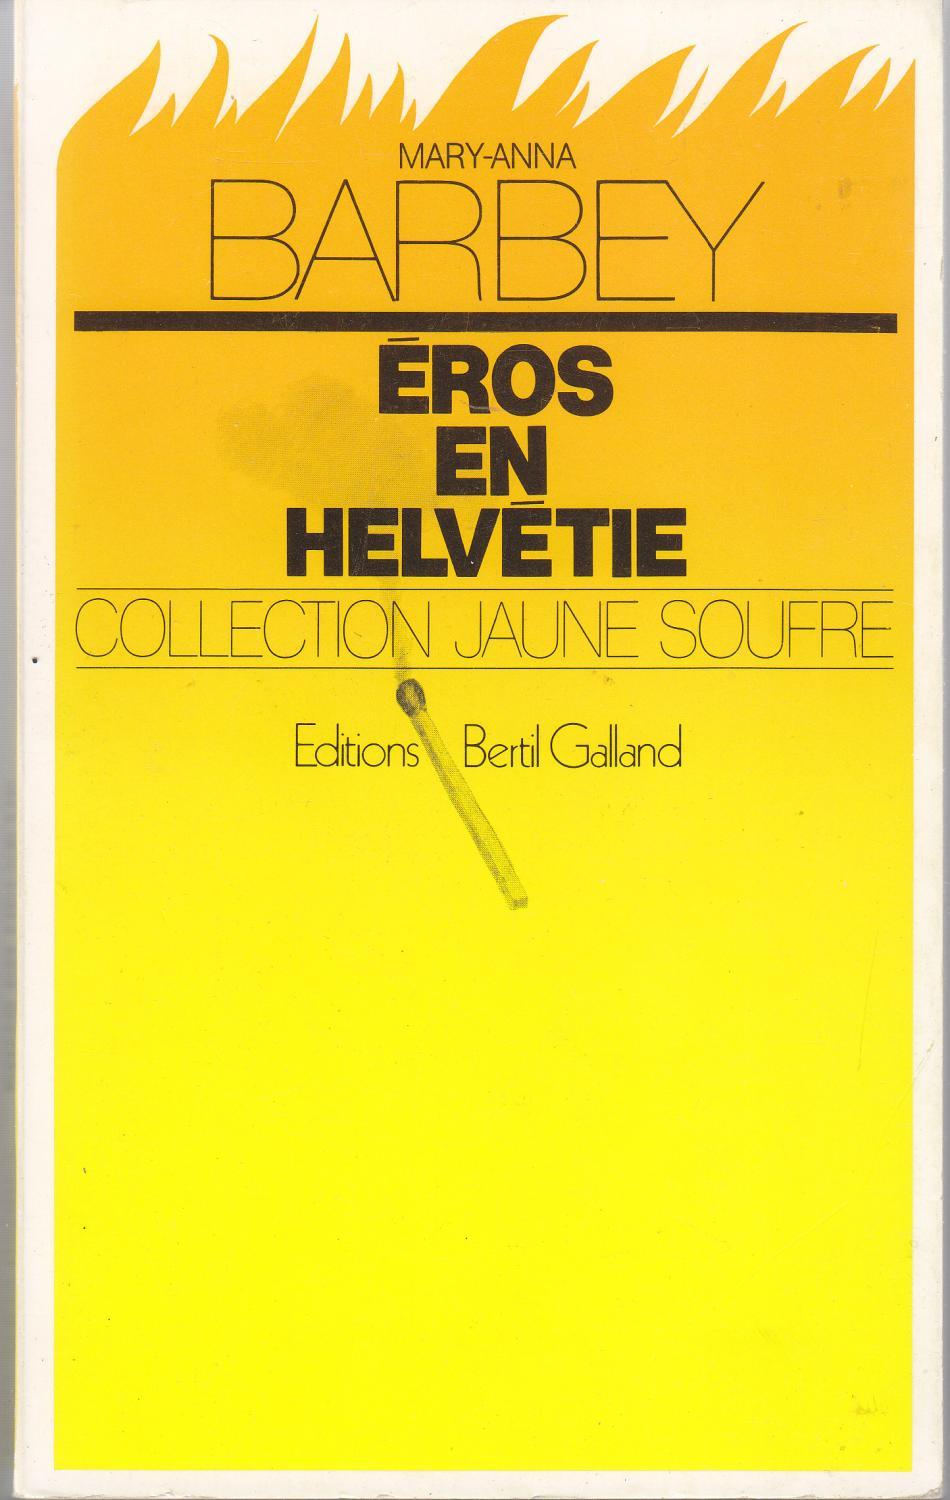 Eros En Helvetie Collection Jaune Soufre